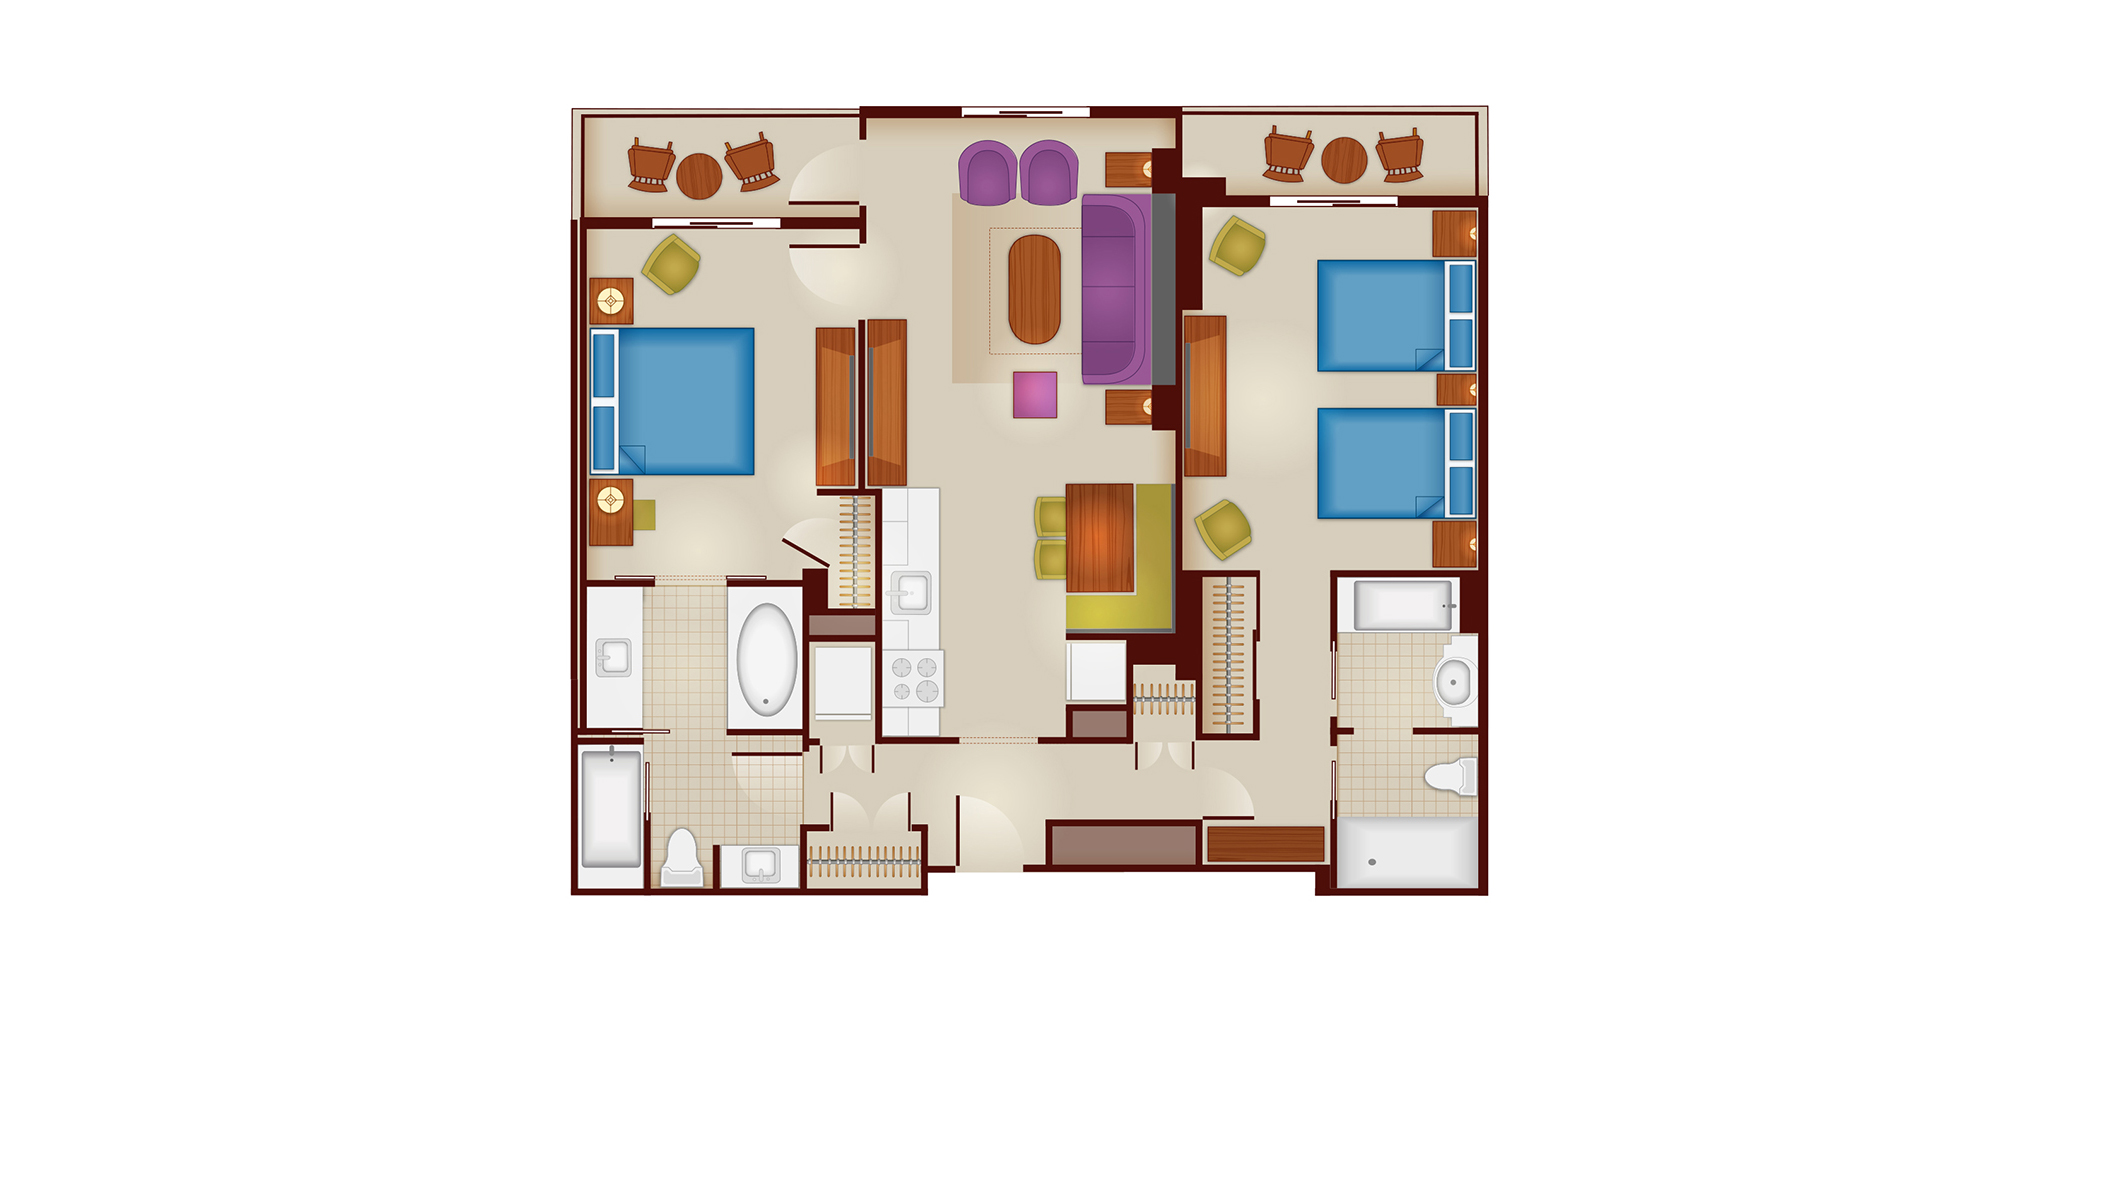 riviera 2-bedroom layout